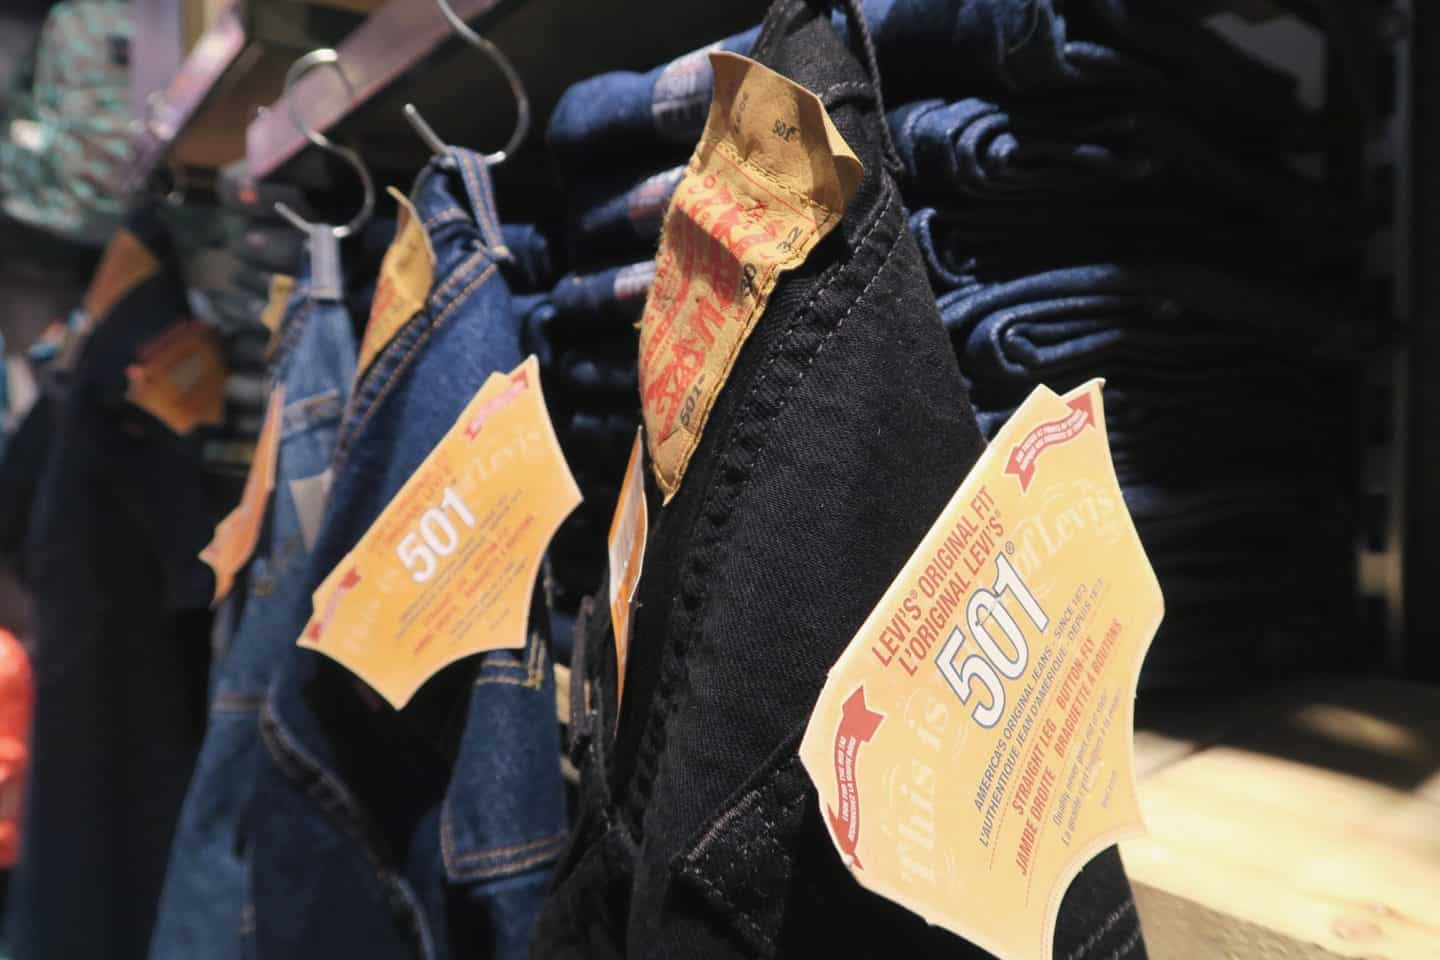 Levi's jeans at NEON Clothing in Toronto